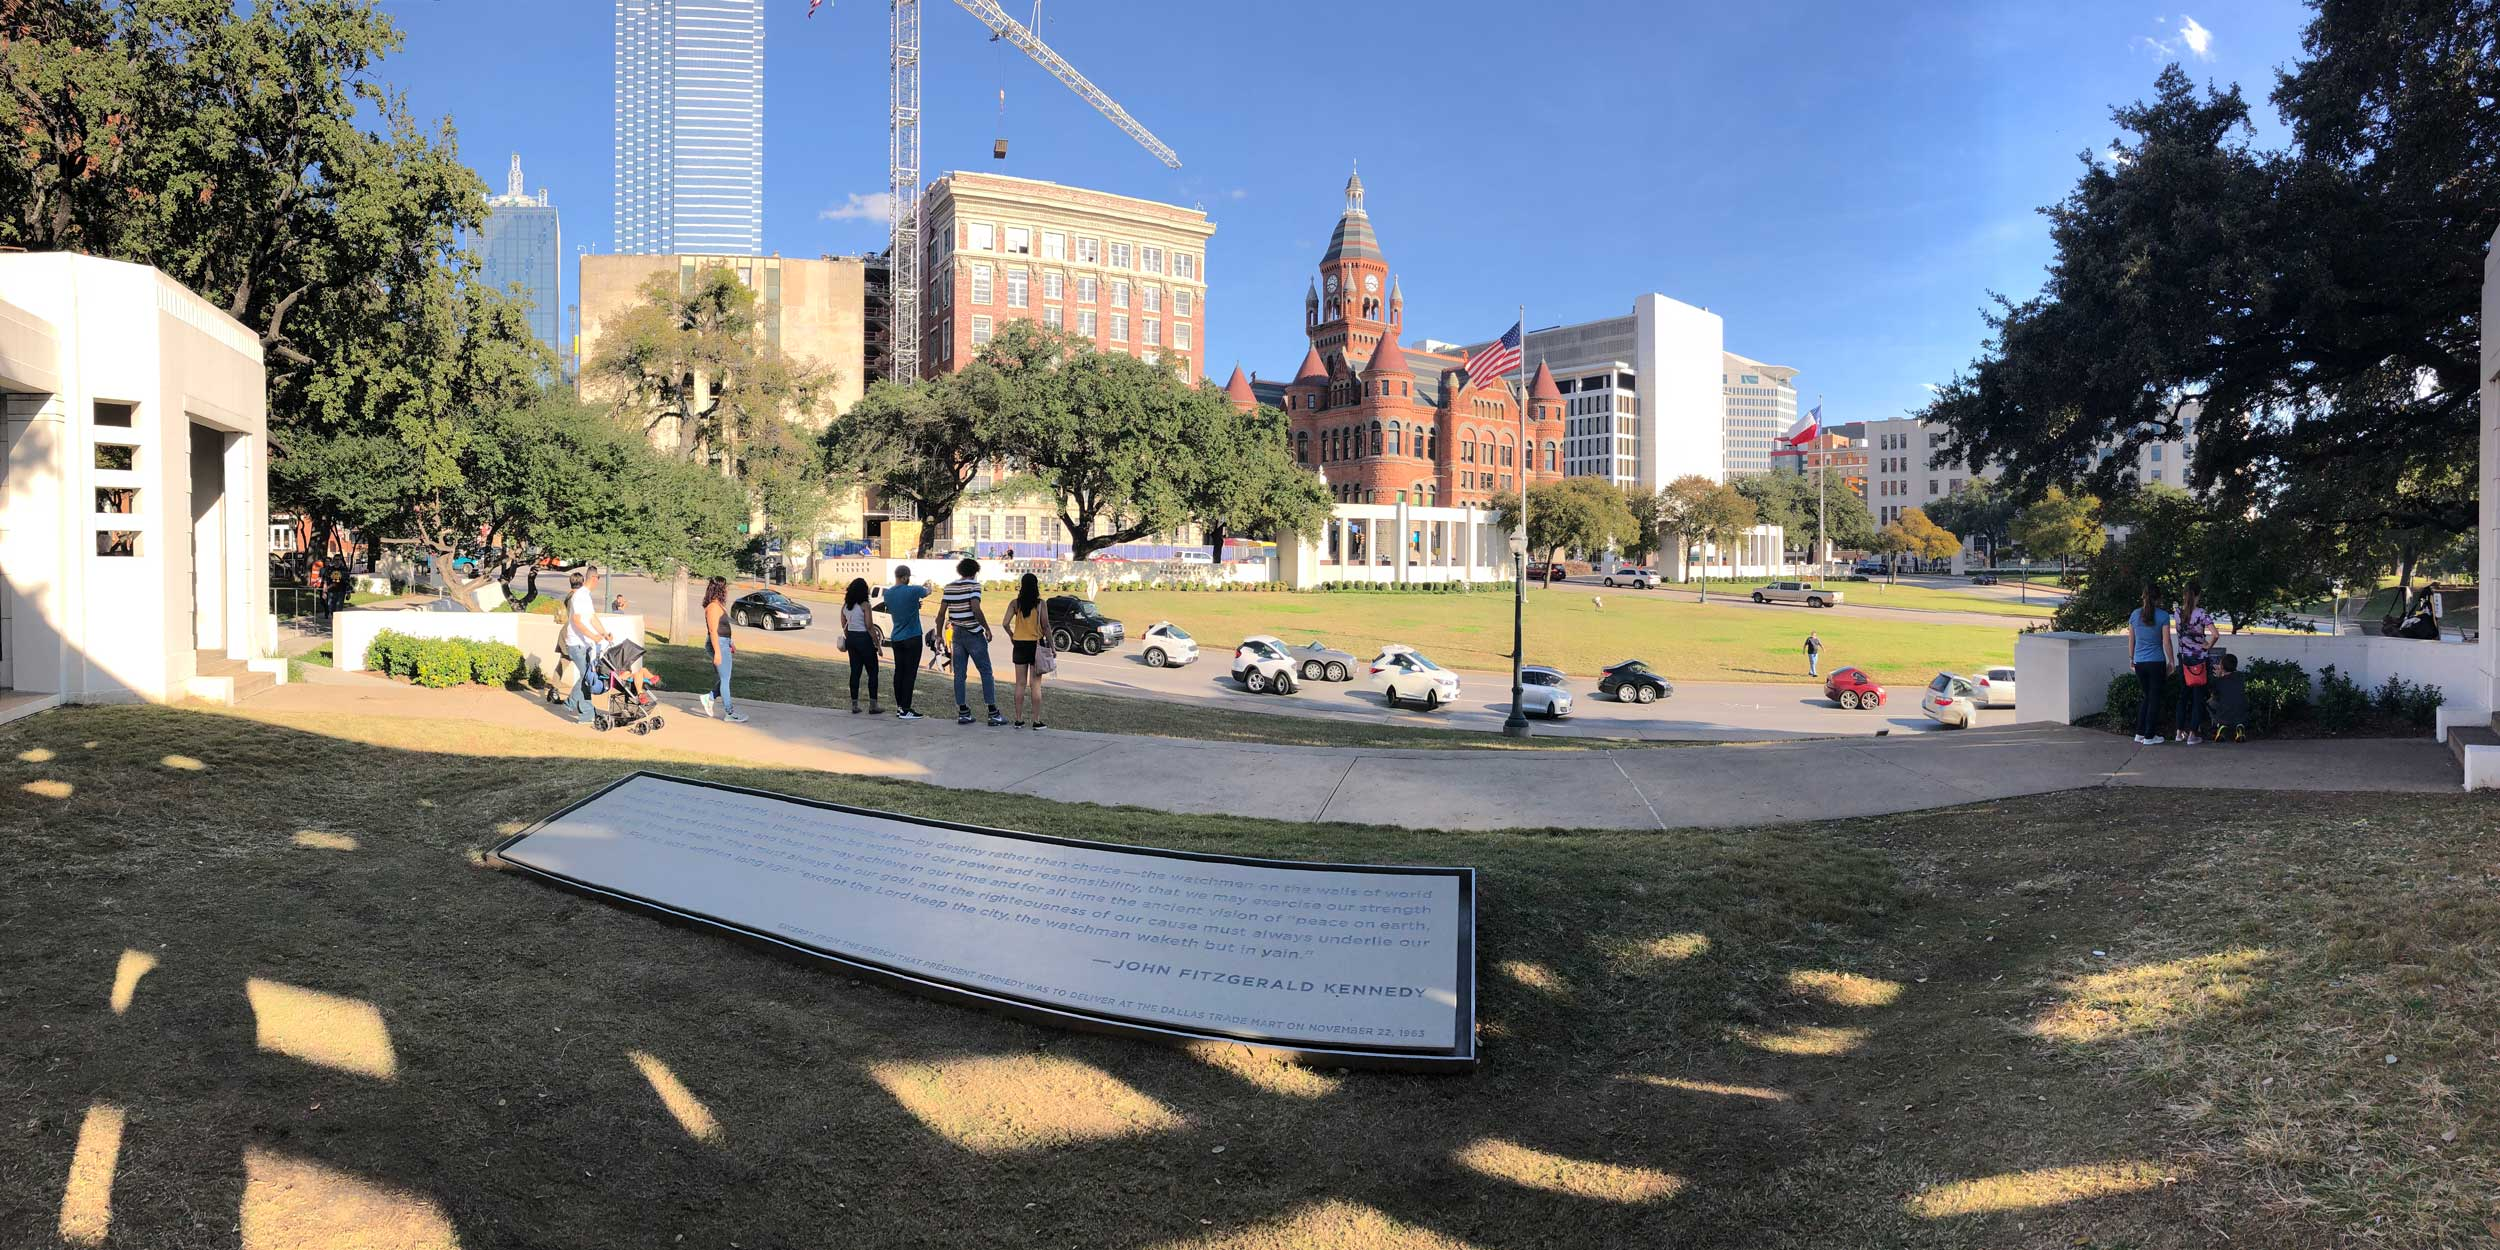 The grassy knoll at Dealey Plaza where President John F. Kennedy was shot in 1963. The plaque commemorates the speech he was on his way to give when he was shot.